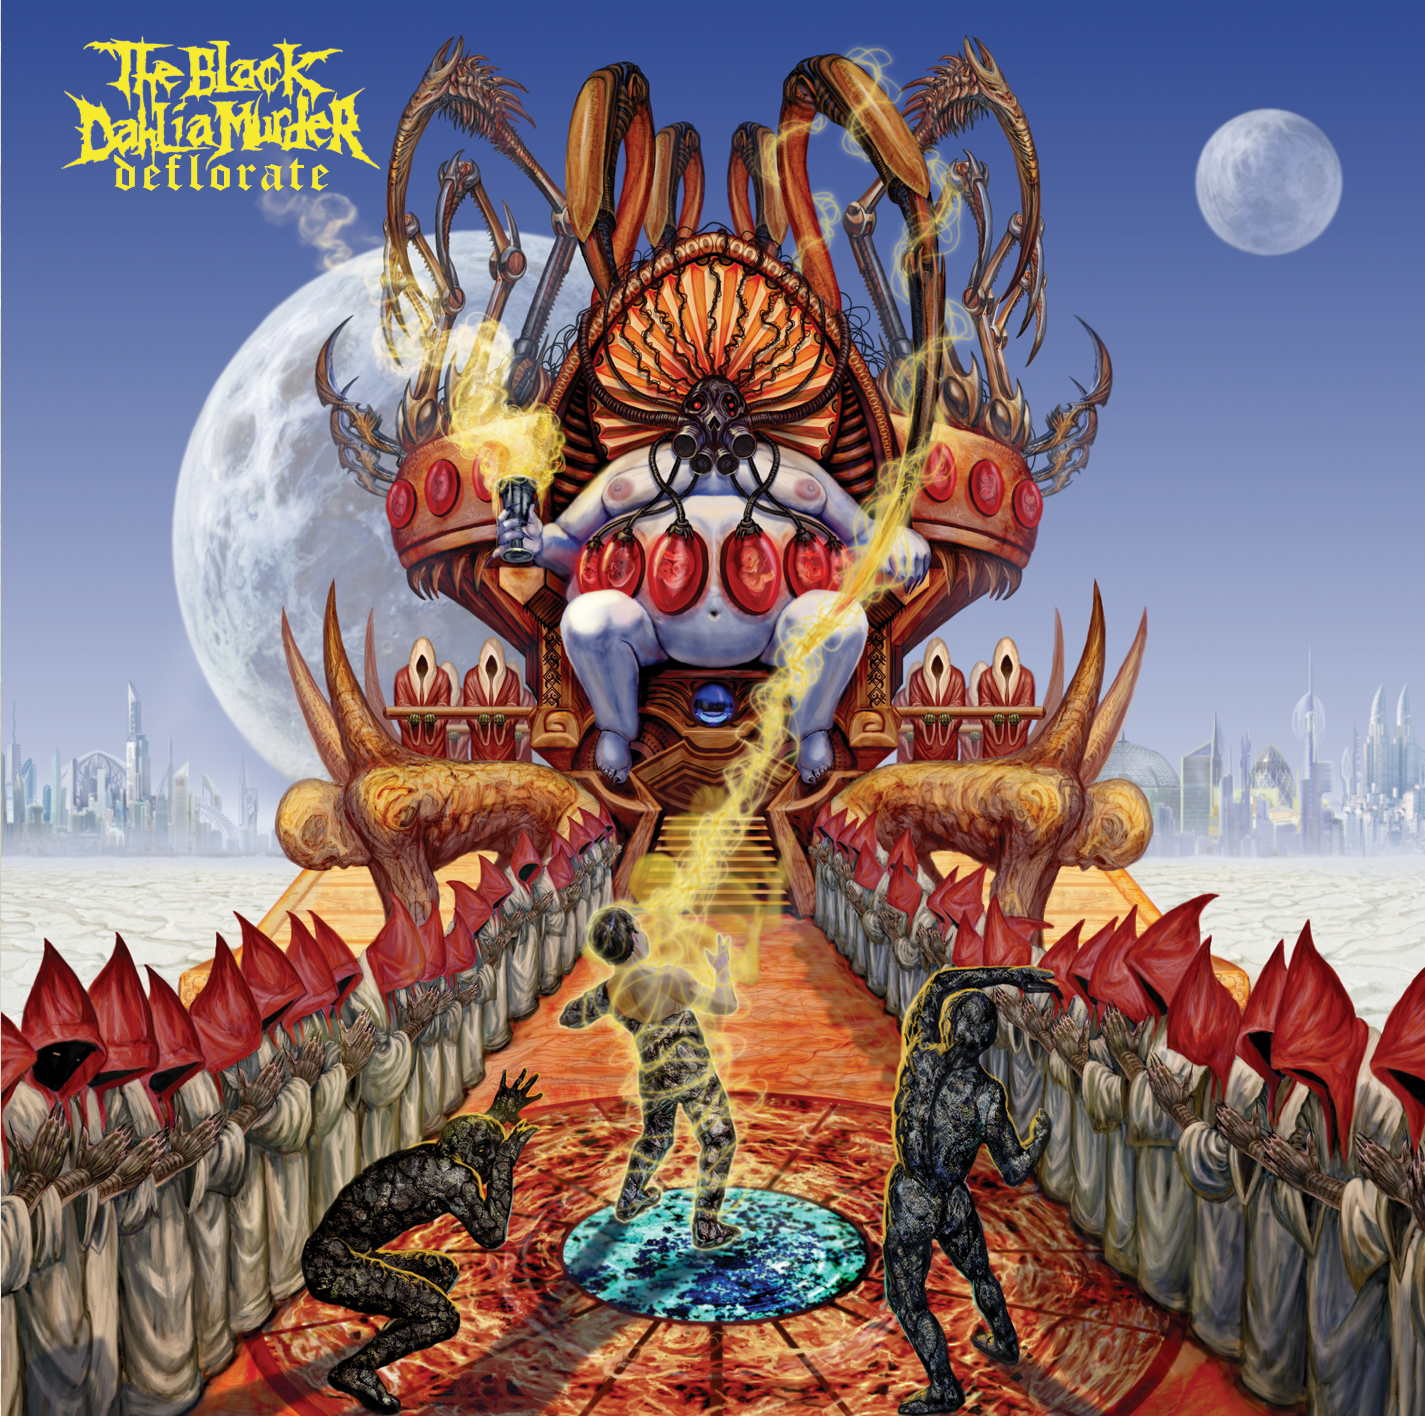 The Black Dahlia Murder – Deflorate Review